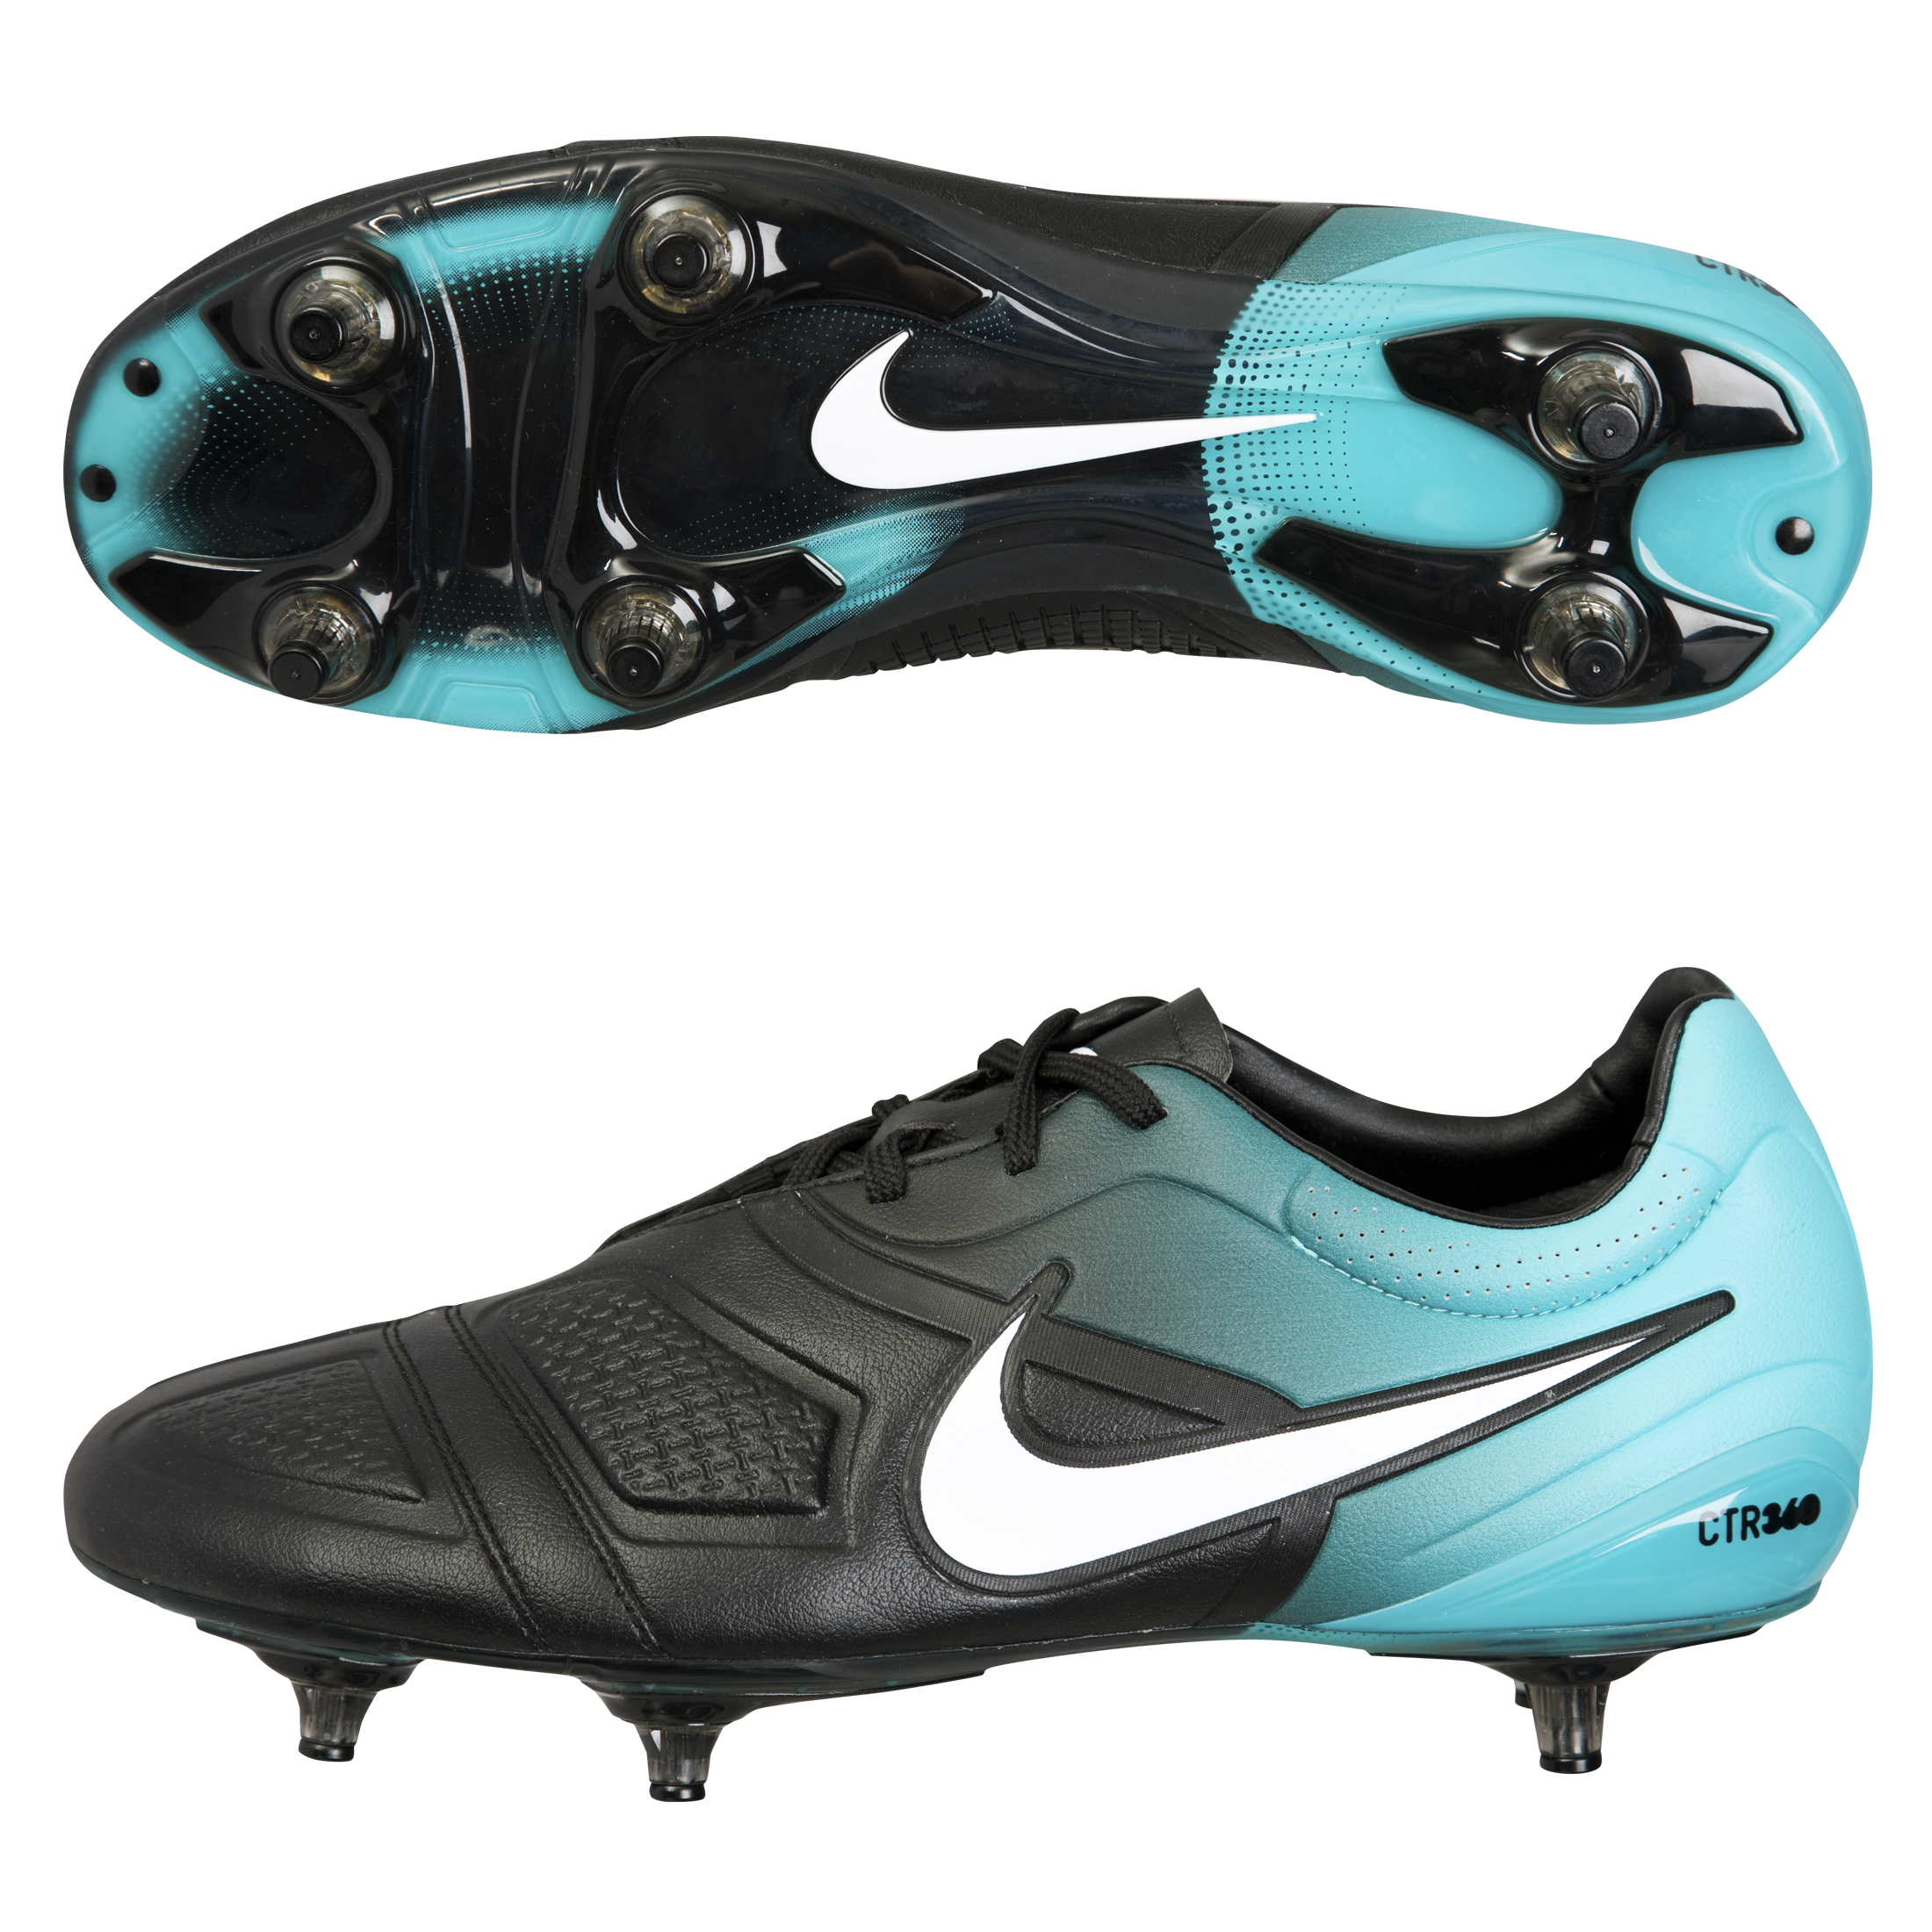 CTR360 Maestri SG Black/White/Retro